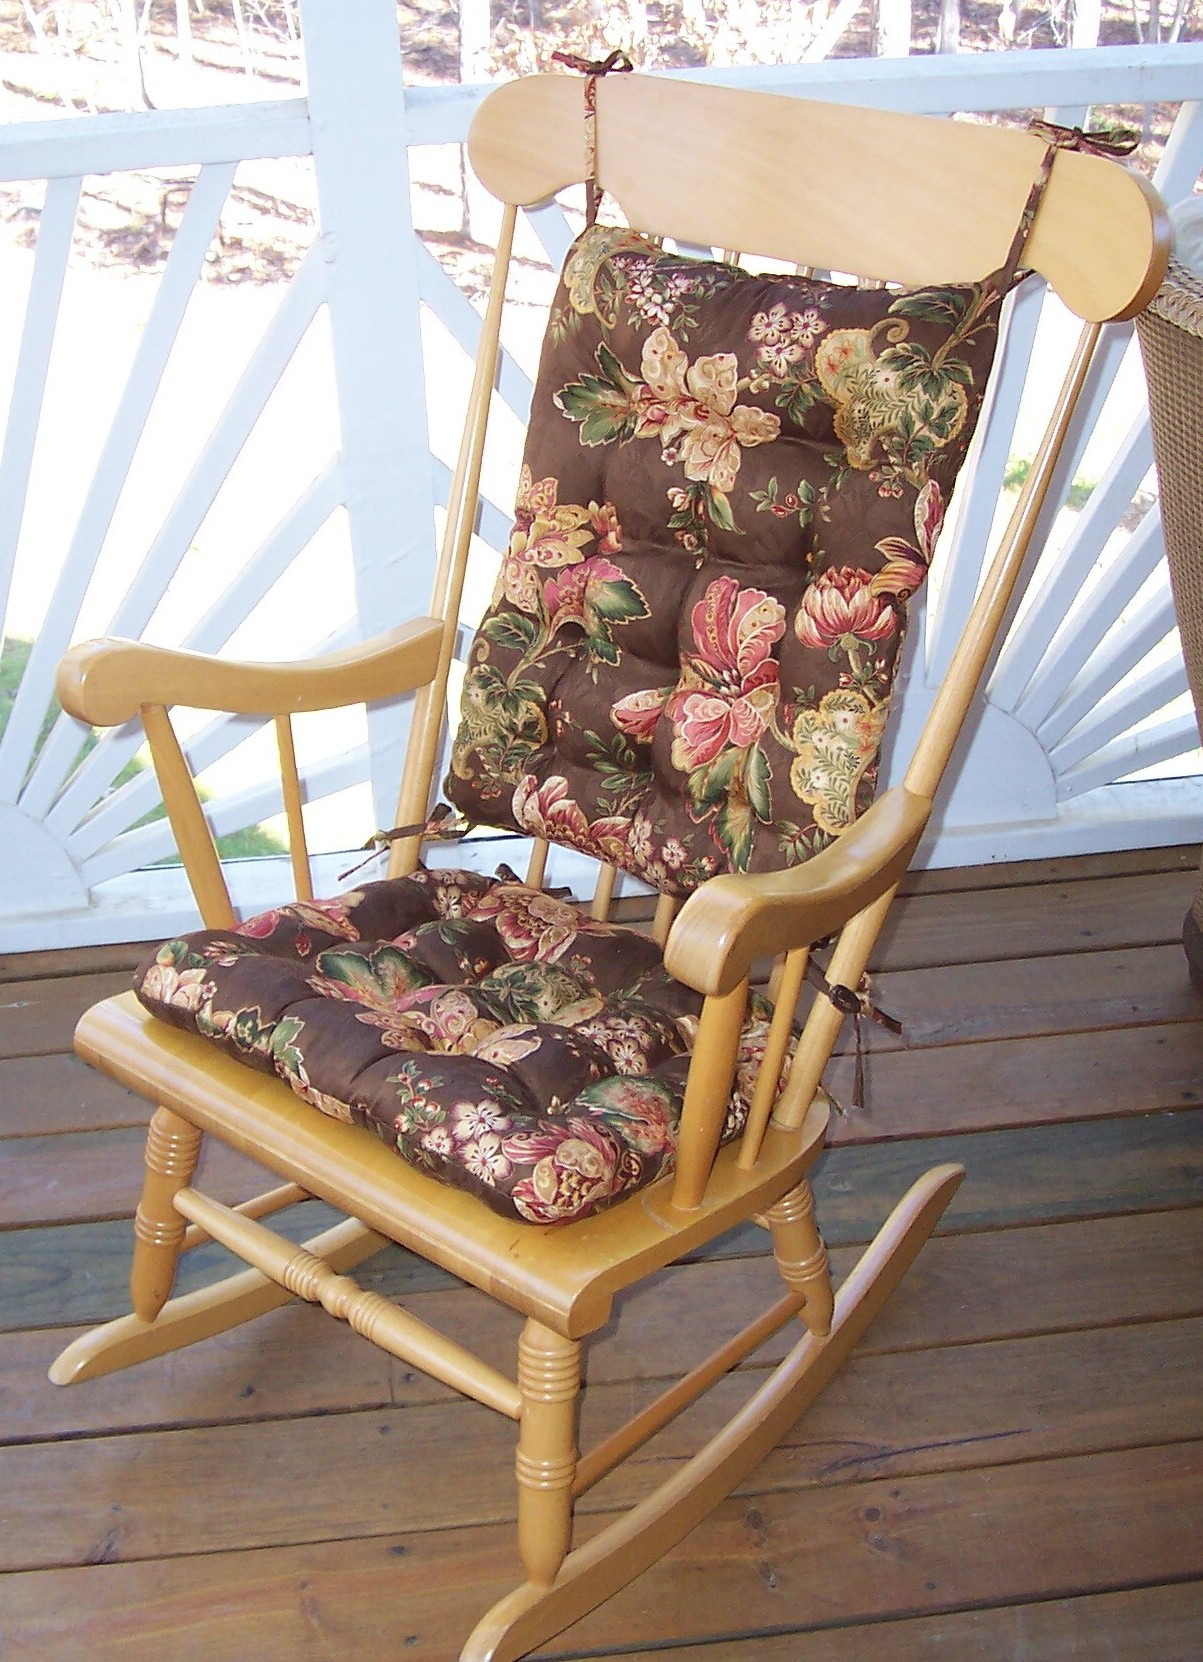 Surprising Rocking Chair Cushion Sets And More Clearance Uwap Interior Chair Design Uwaporg